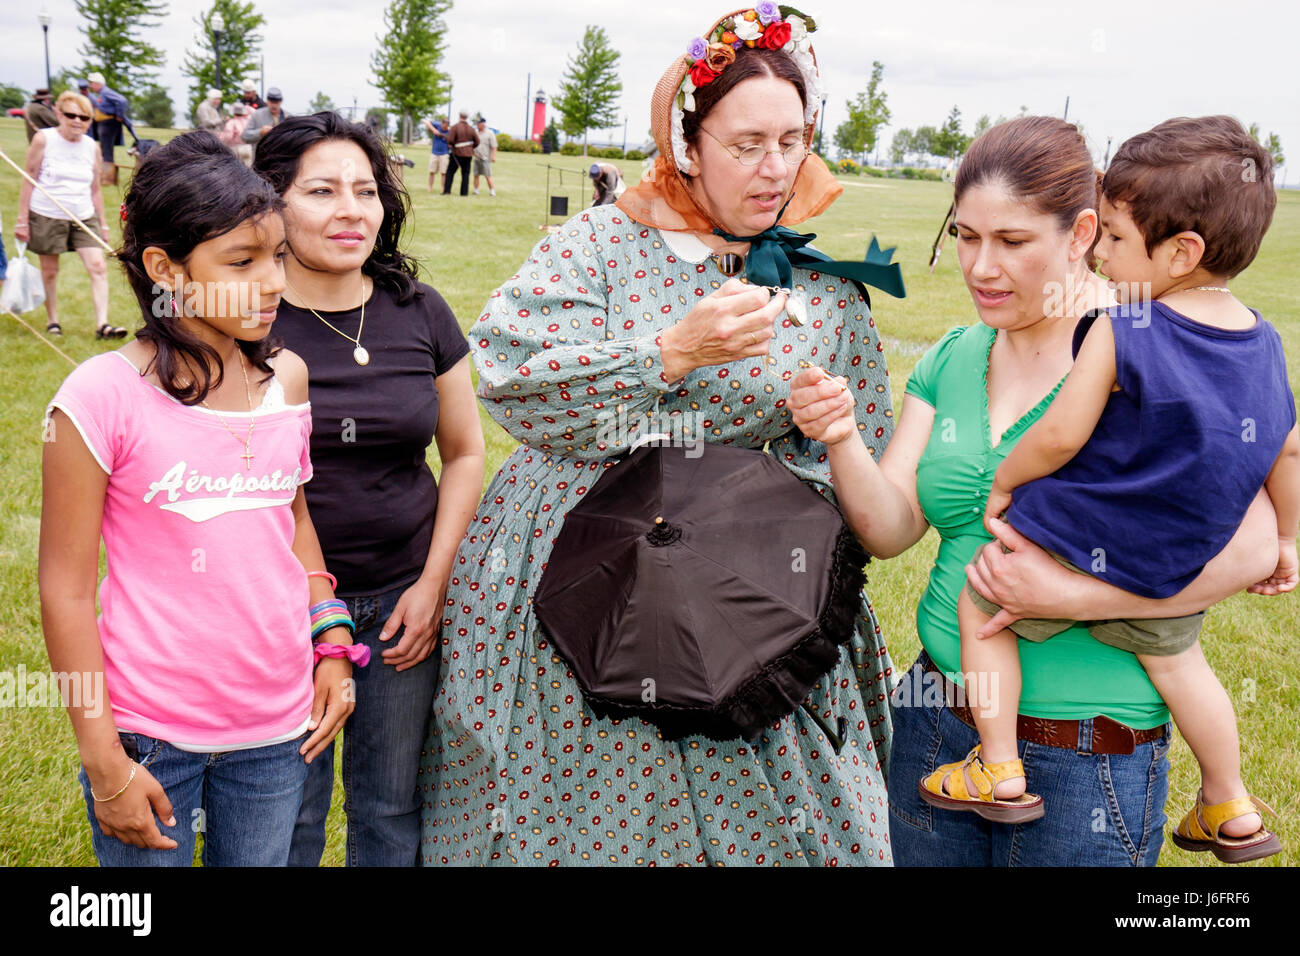 Wisconsin Kenosha Civil War Museum Civil War Days muster Park City Grays Hispanic woman women boy girl family education - Stock Image